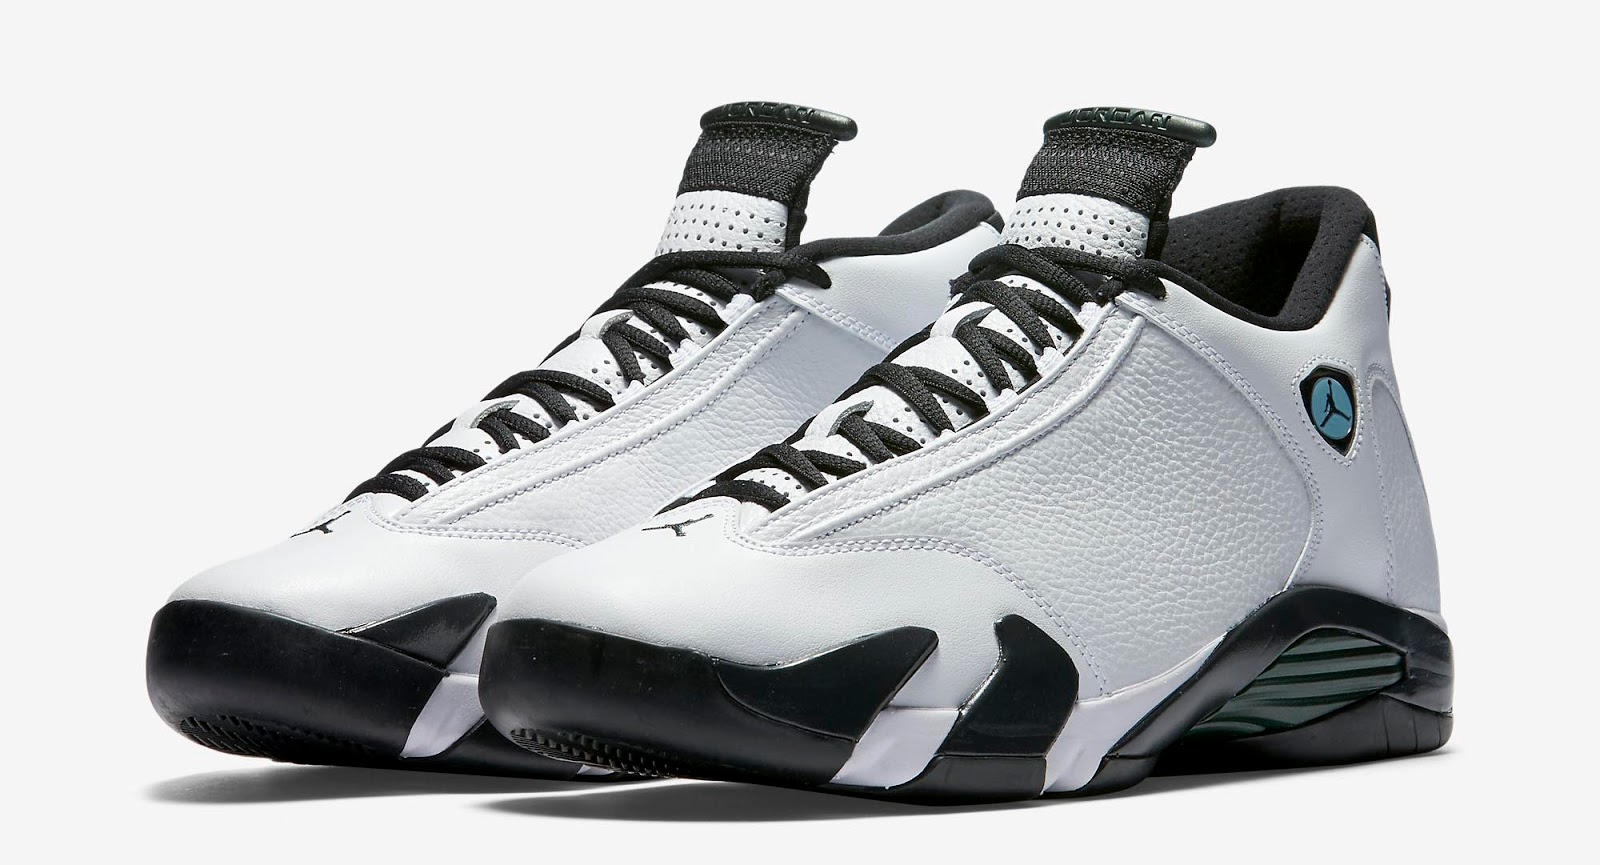 newest 3f821 c7f2f Air Jordan 14 Retro White Black-Oxidized Green-Legend Blue Release Reminder